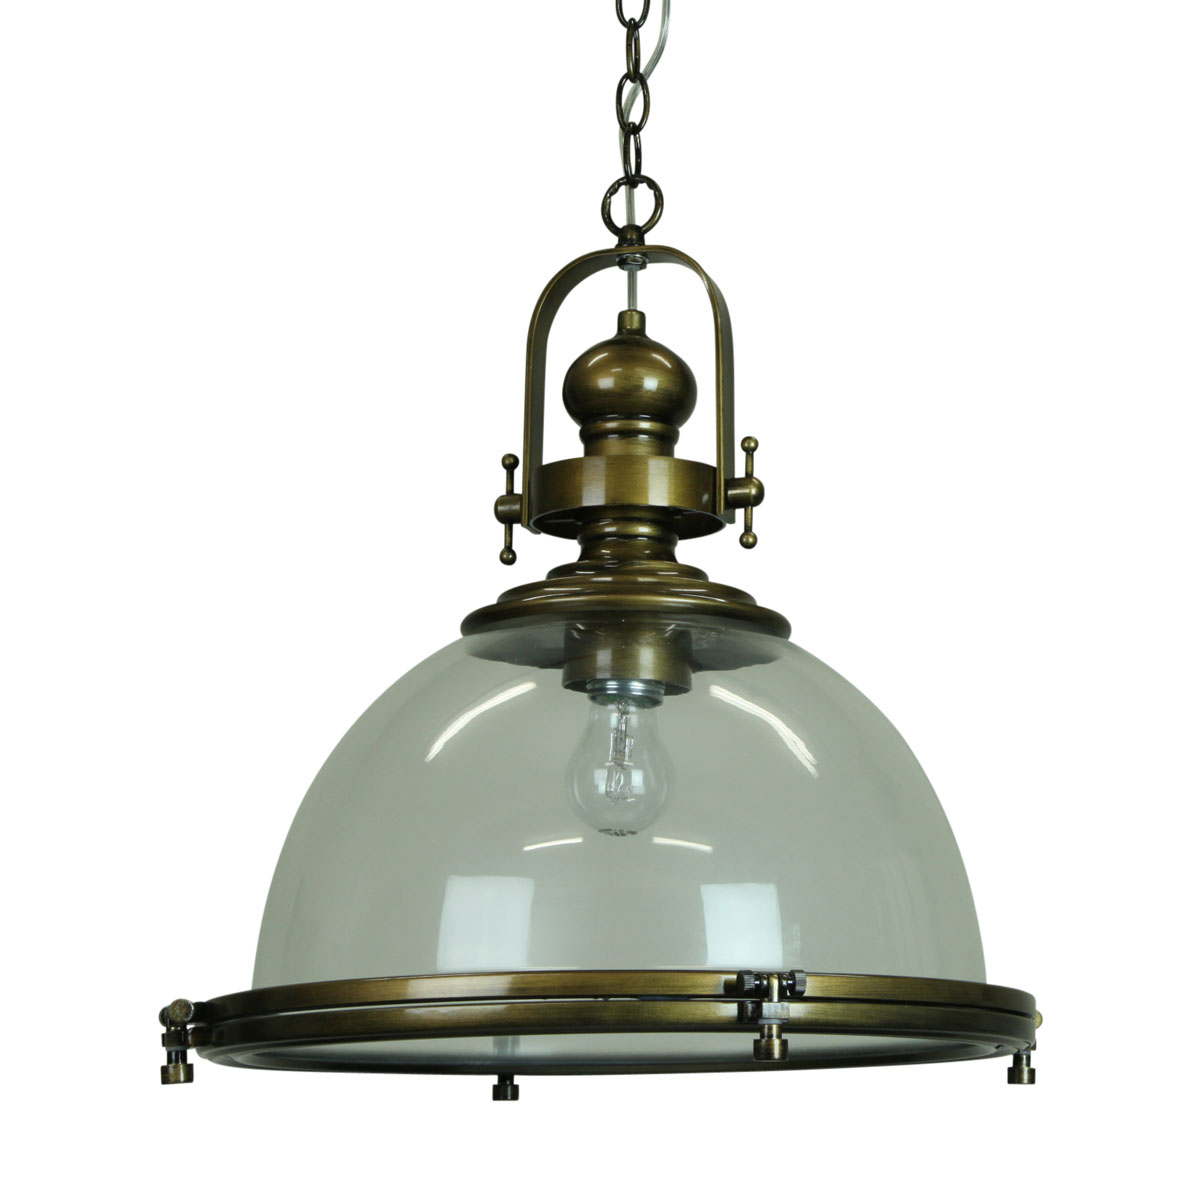 Gaia industrial clear antique brass pendant for Antique pendant light fixtures